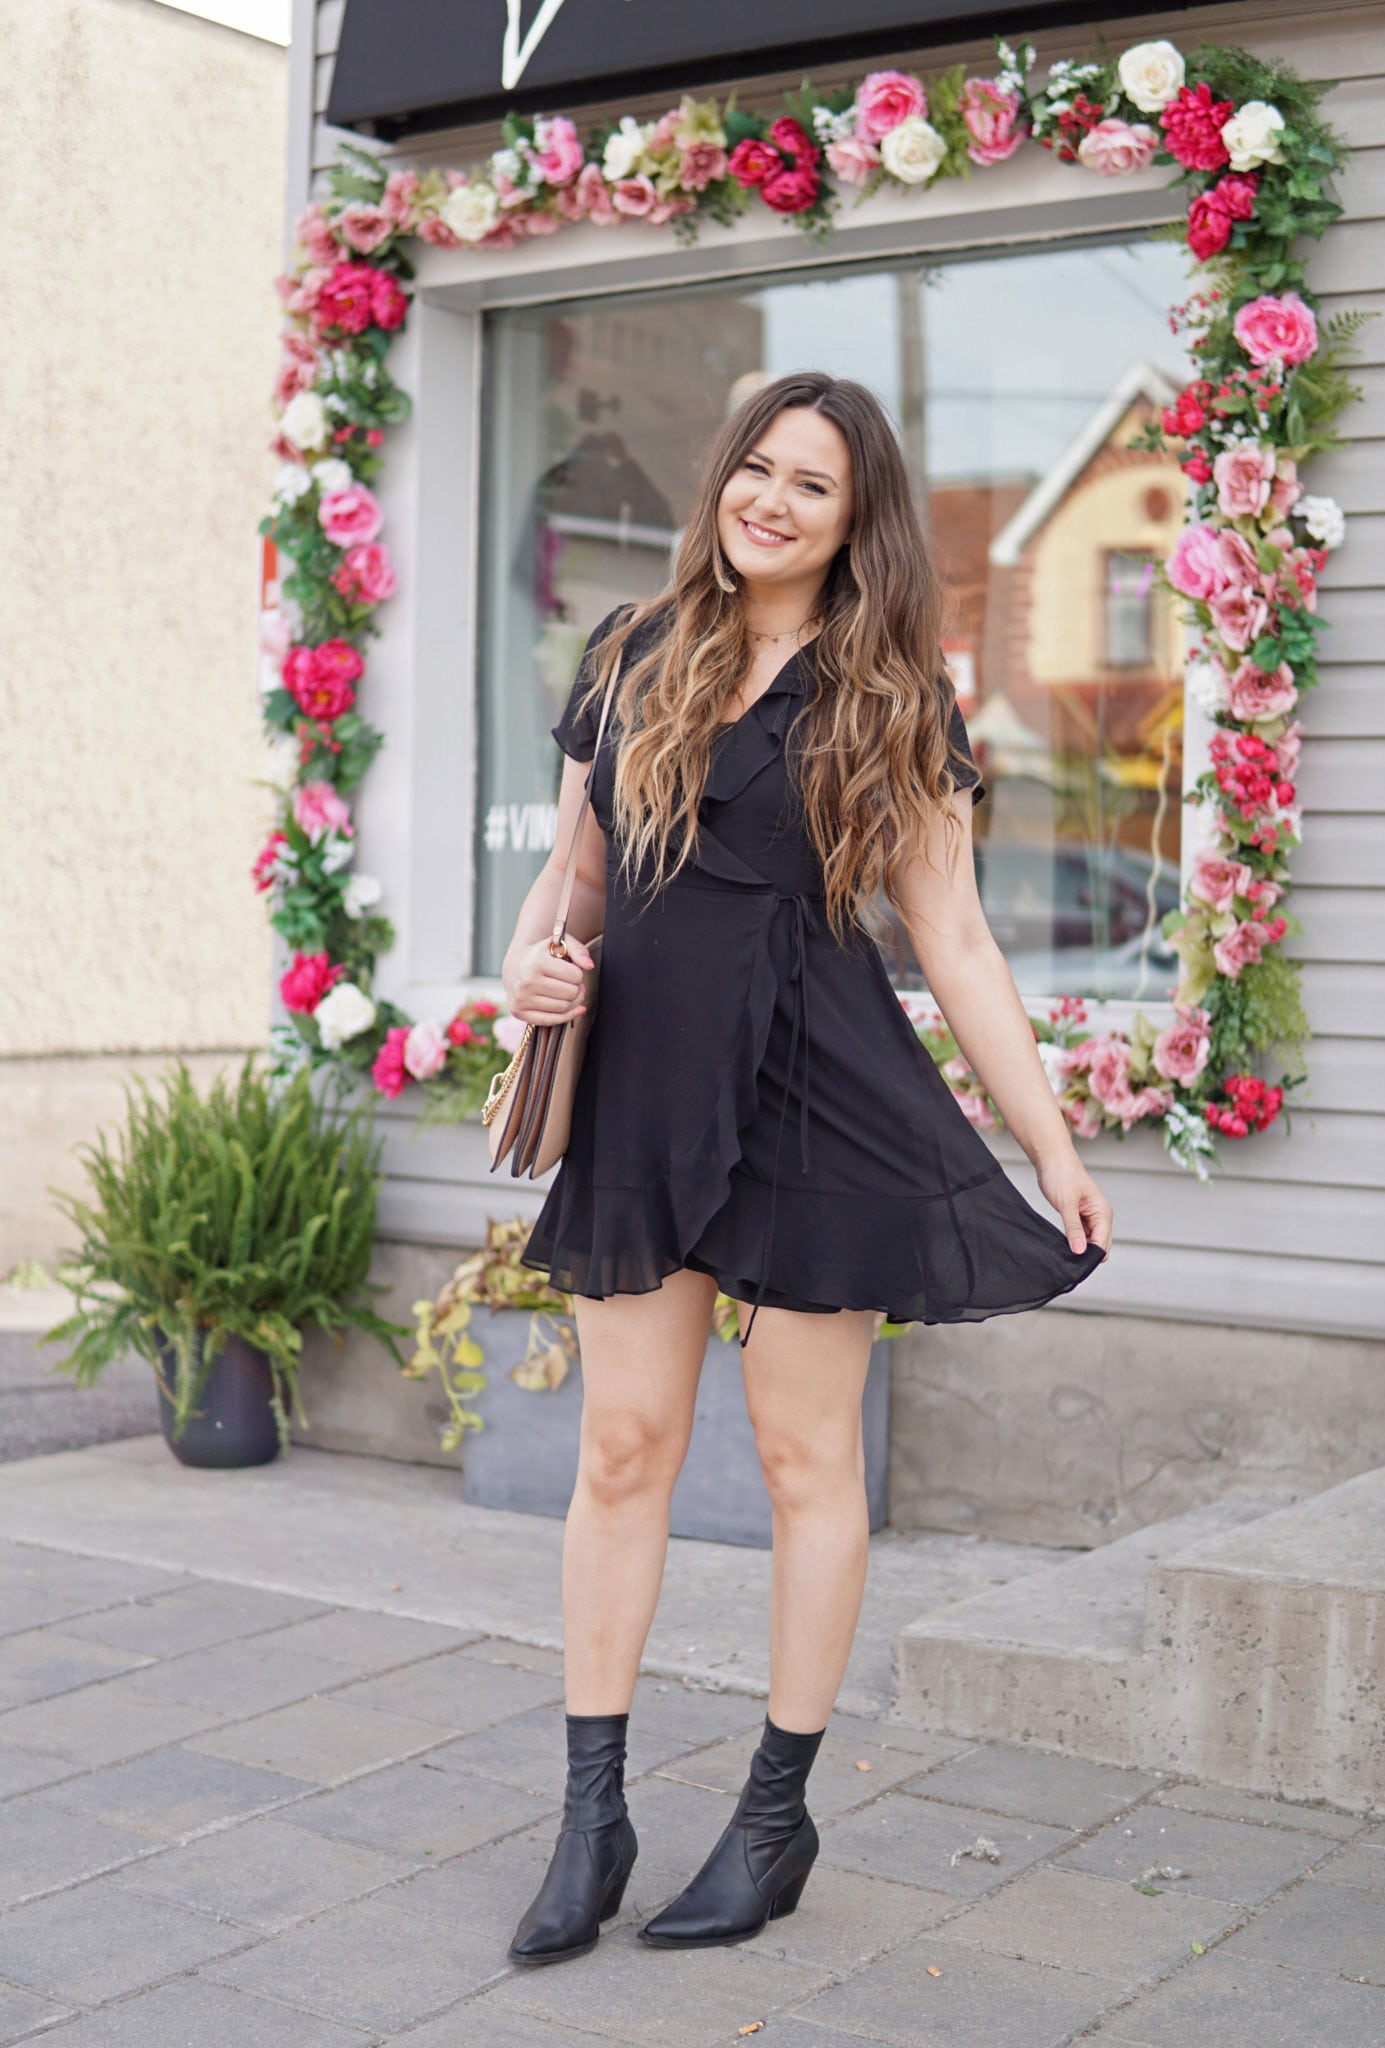 Mash Elle beauty blogger | sassy date night look | date night outfit | LBD | black dress | boots and dress outfit